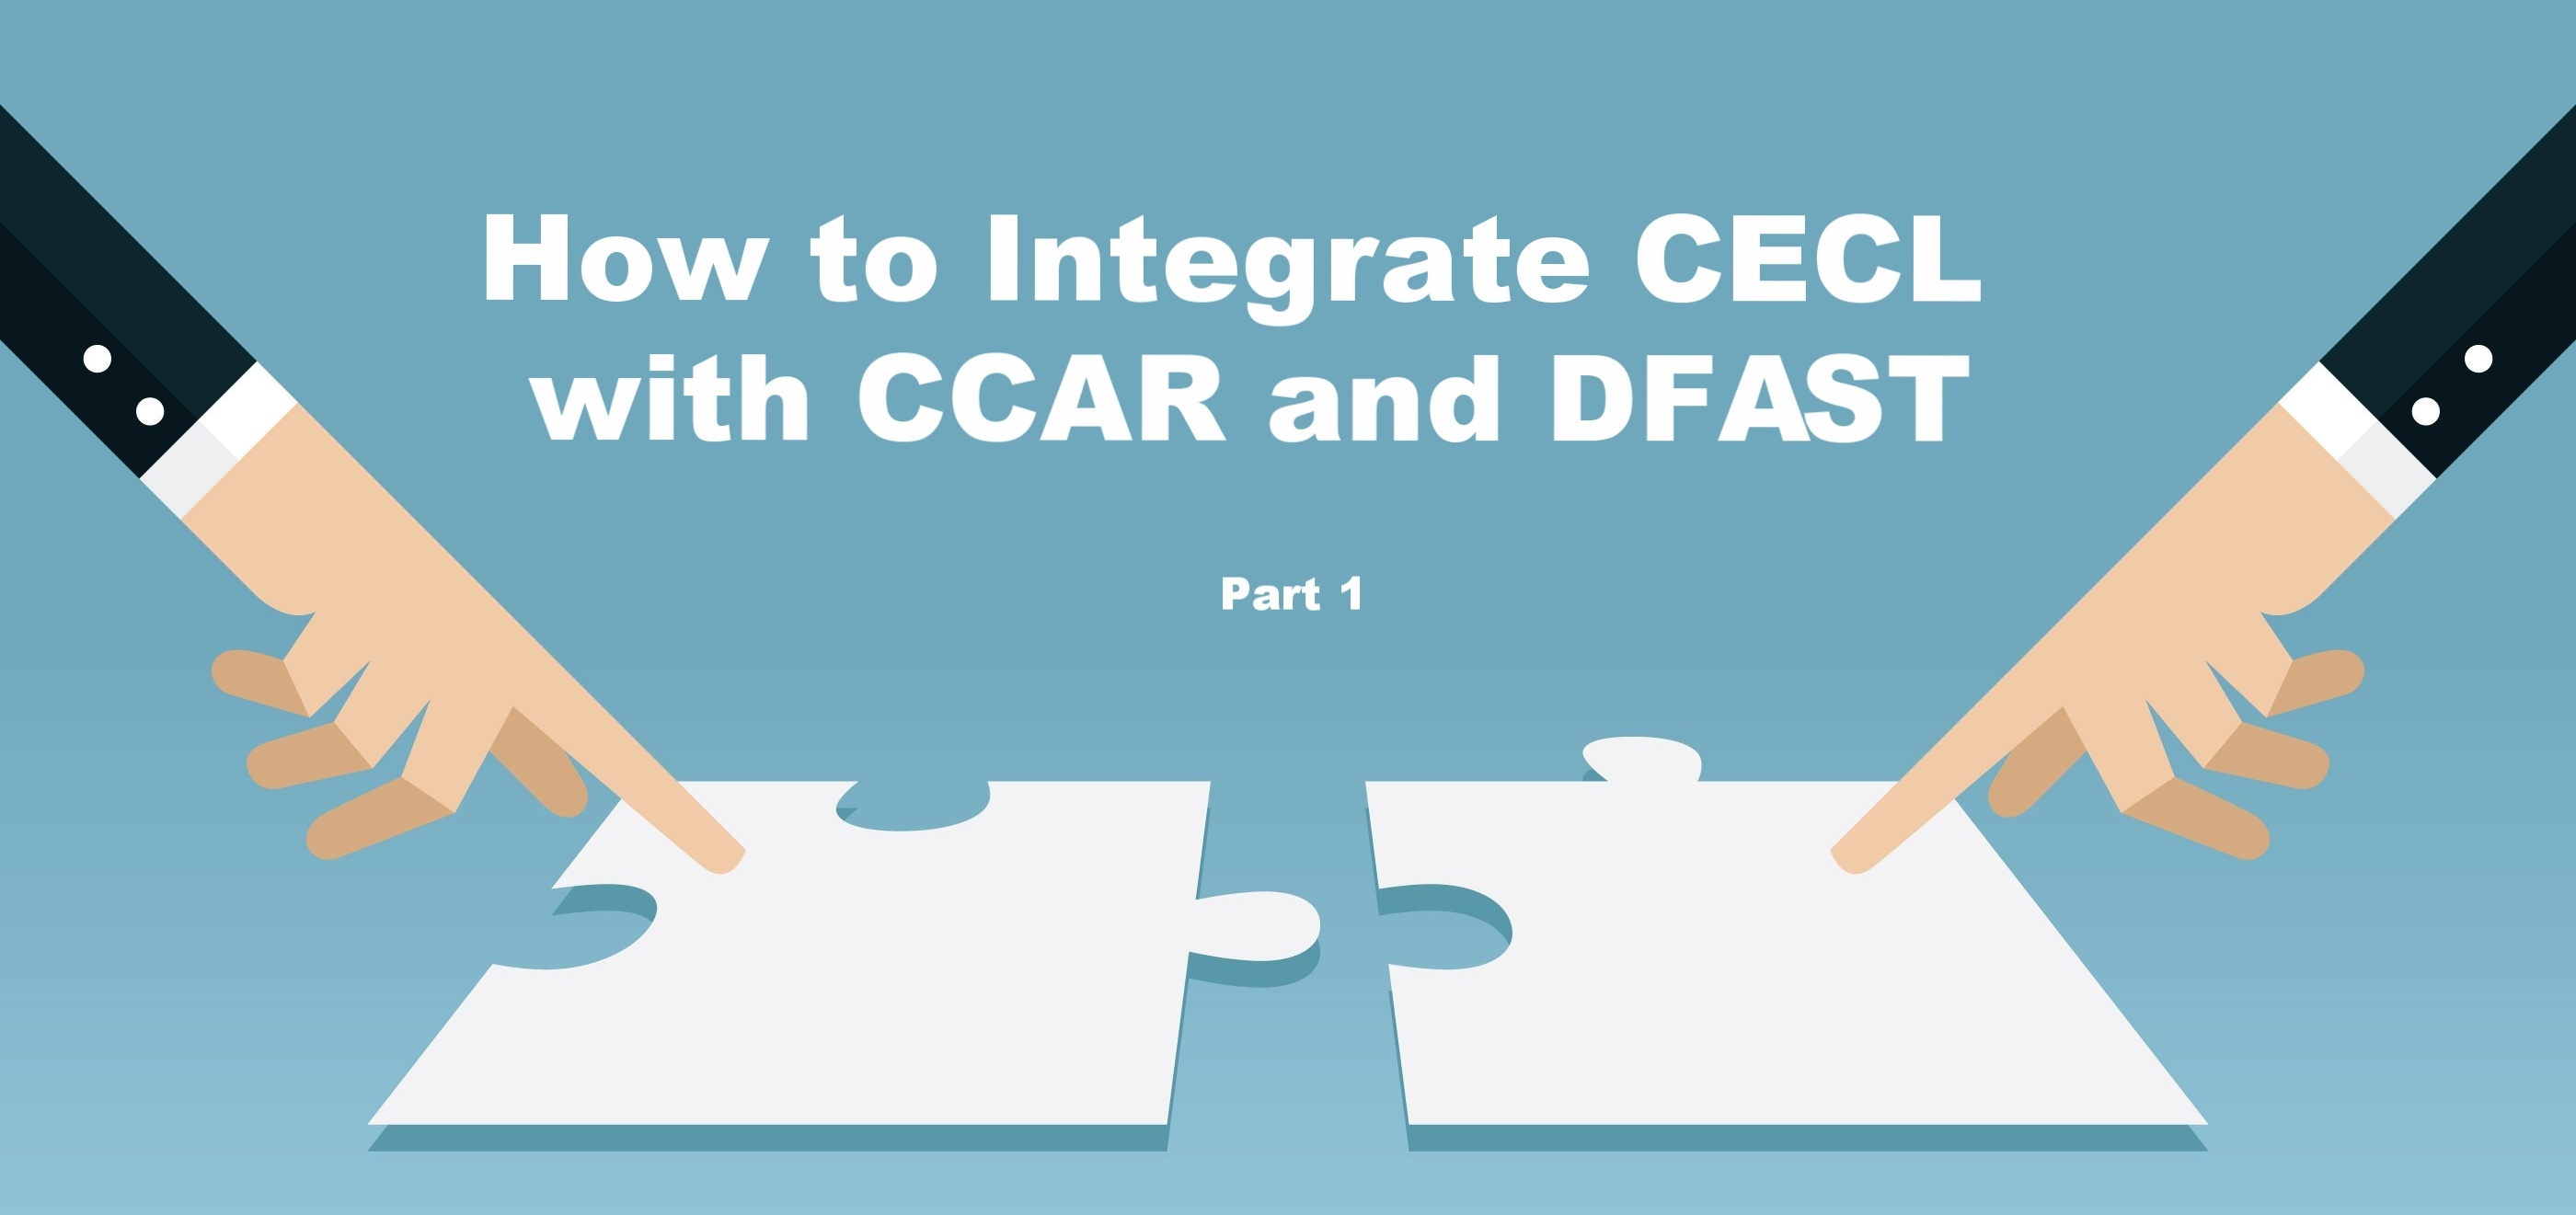 How to Integrate CECL with CCAR and DFAST